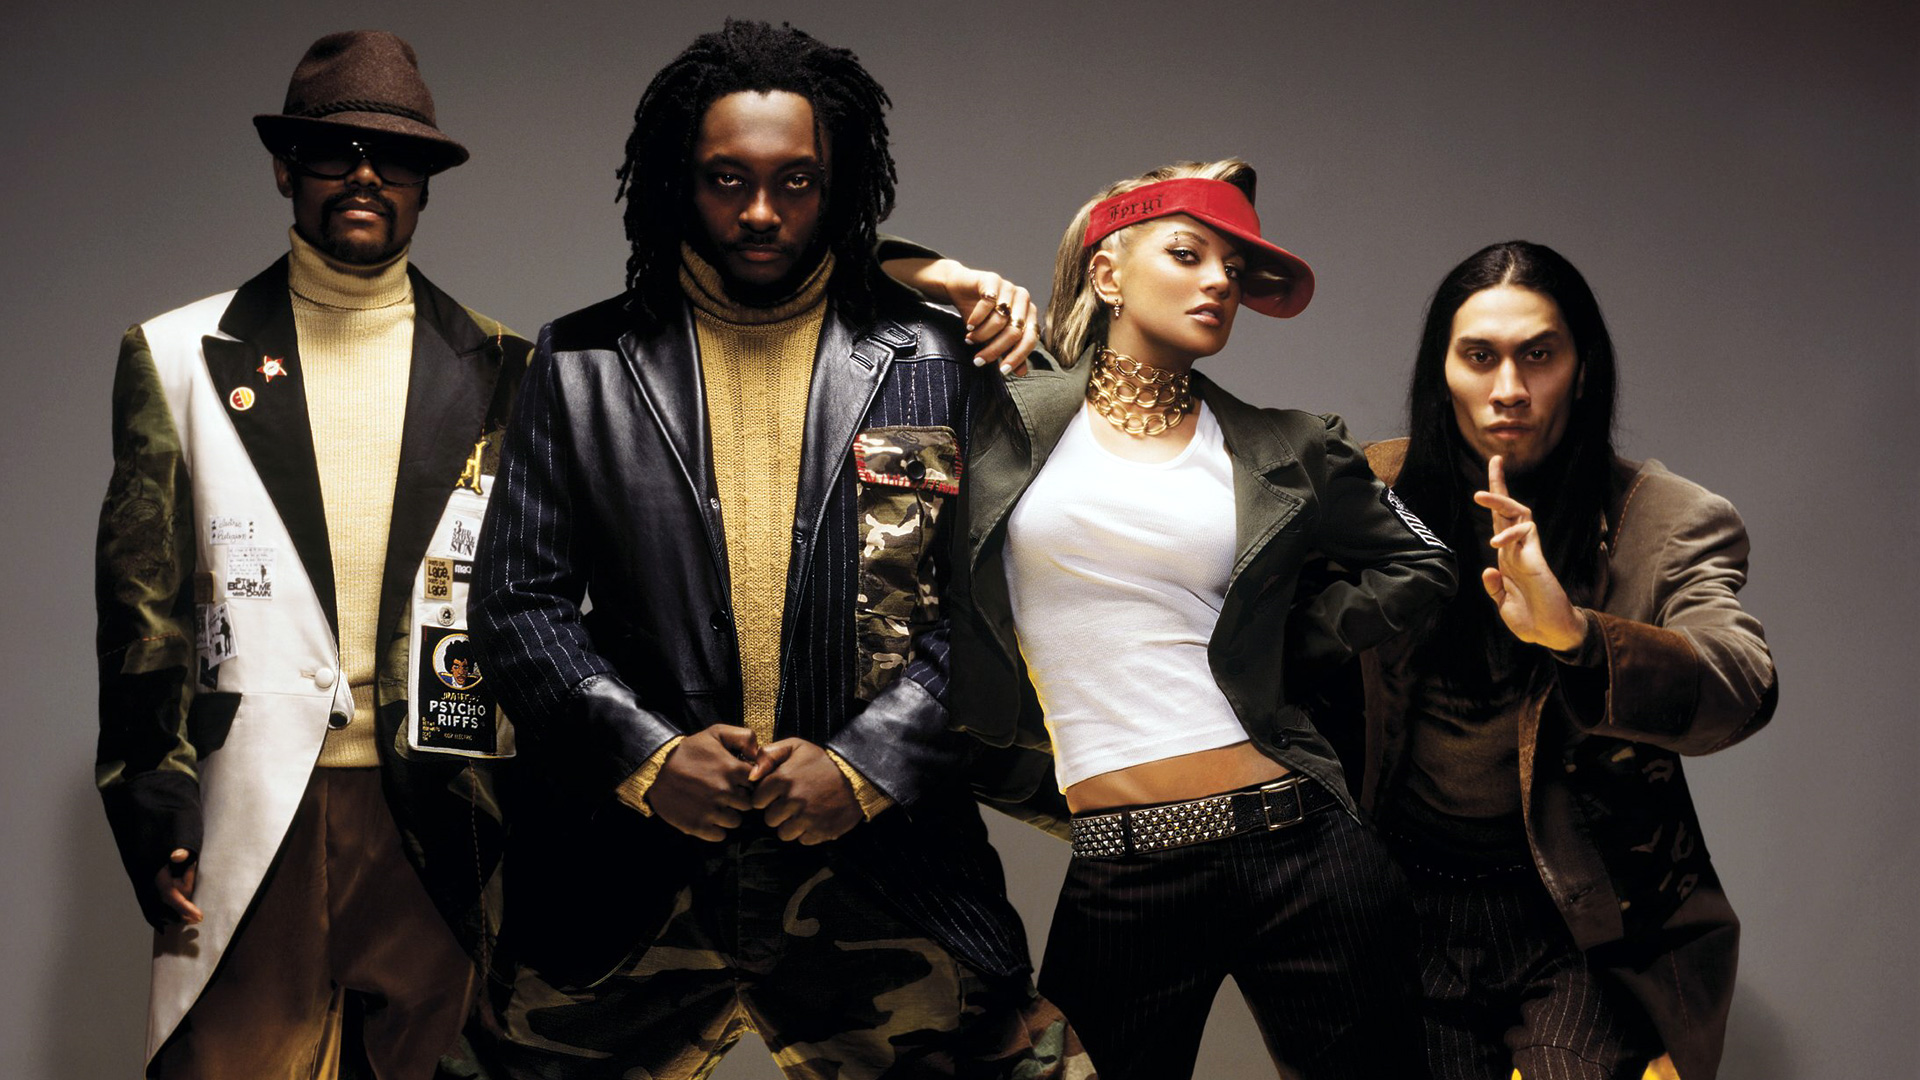 1920x1080 > The Black Eyed Peas Wallpapers